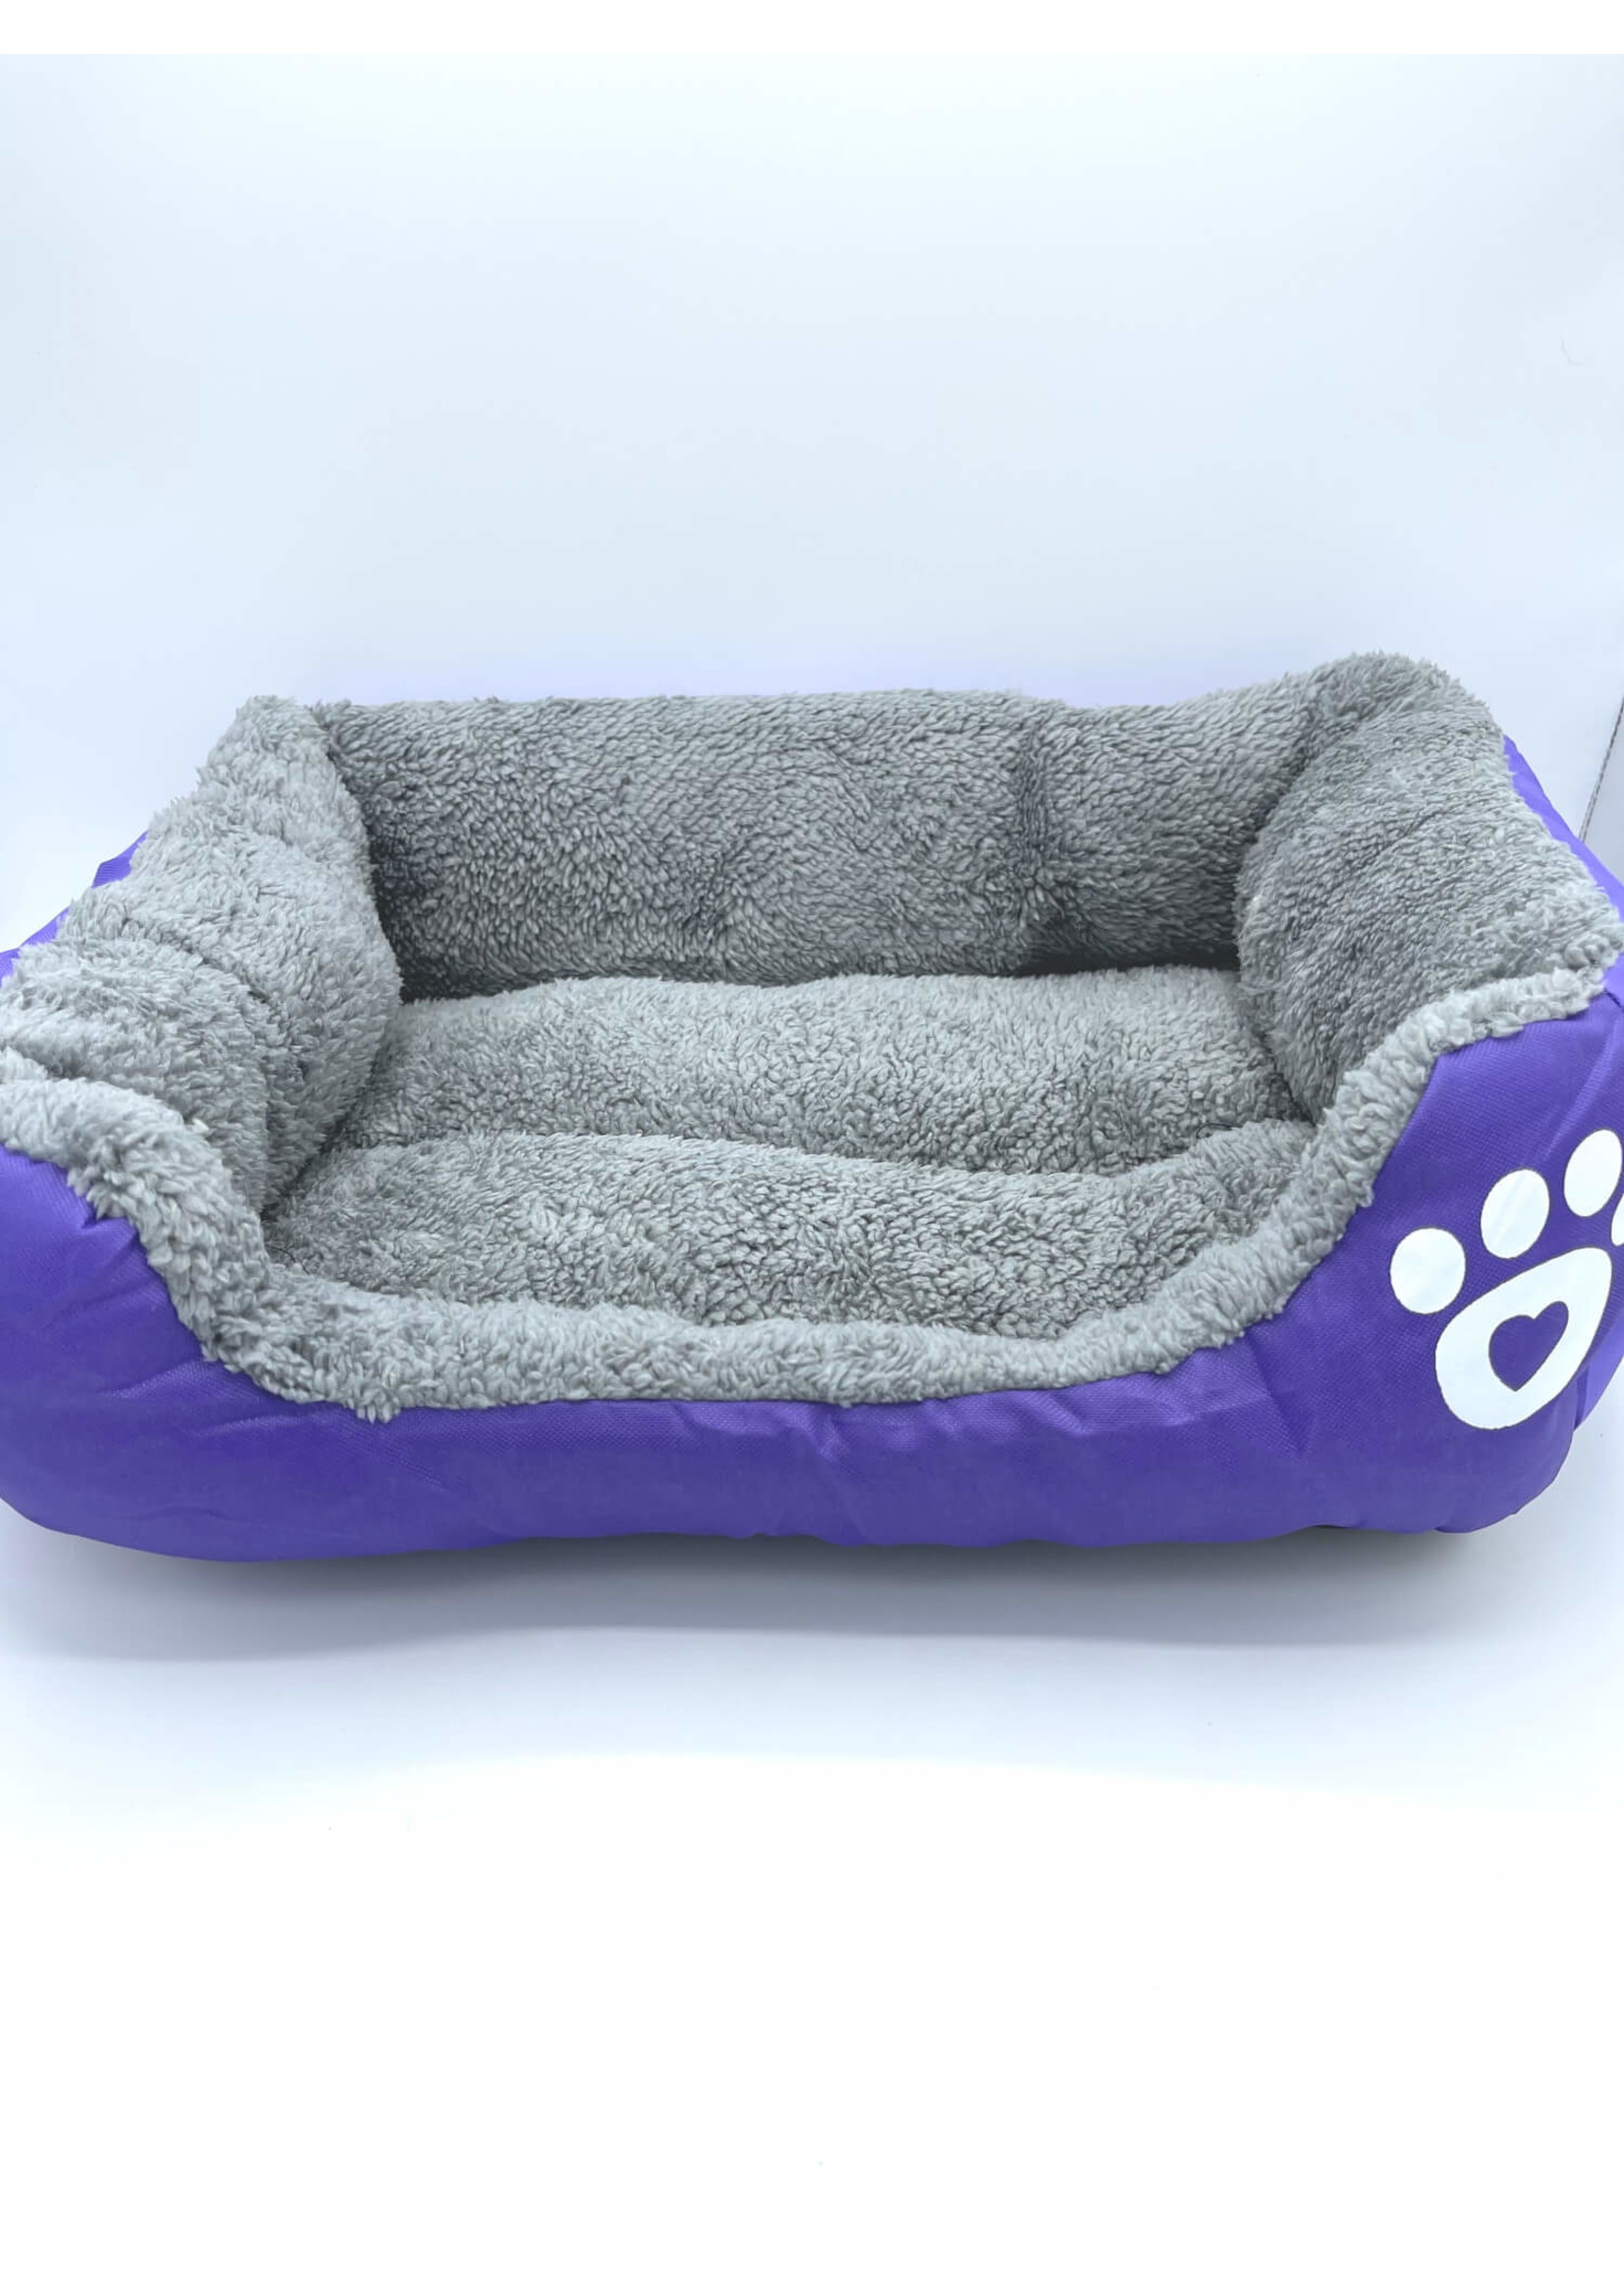 Luxury Pet Bed (Dogs & Cats)